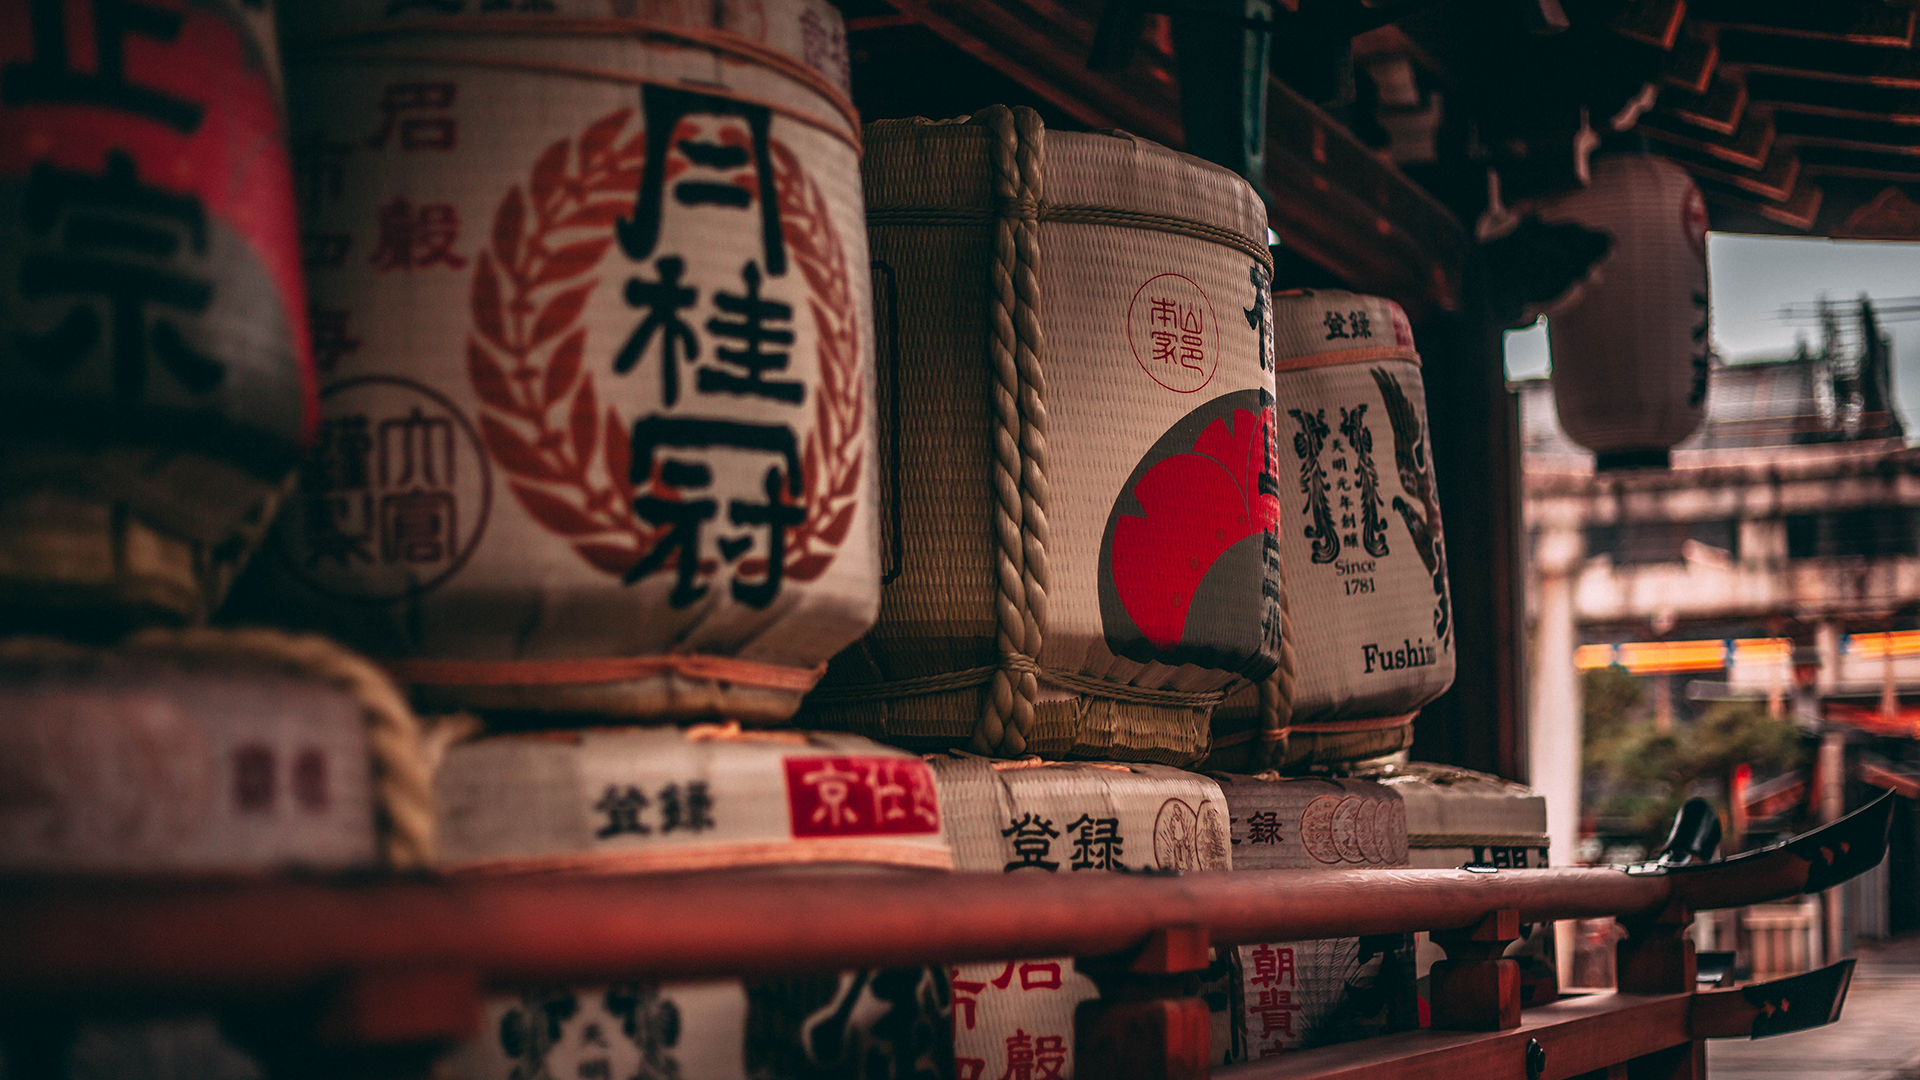 Get the perfect Japanese alcohol in Japanese convenience stores